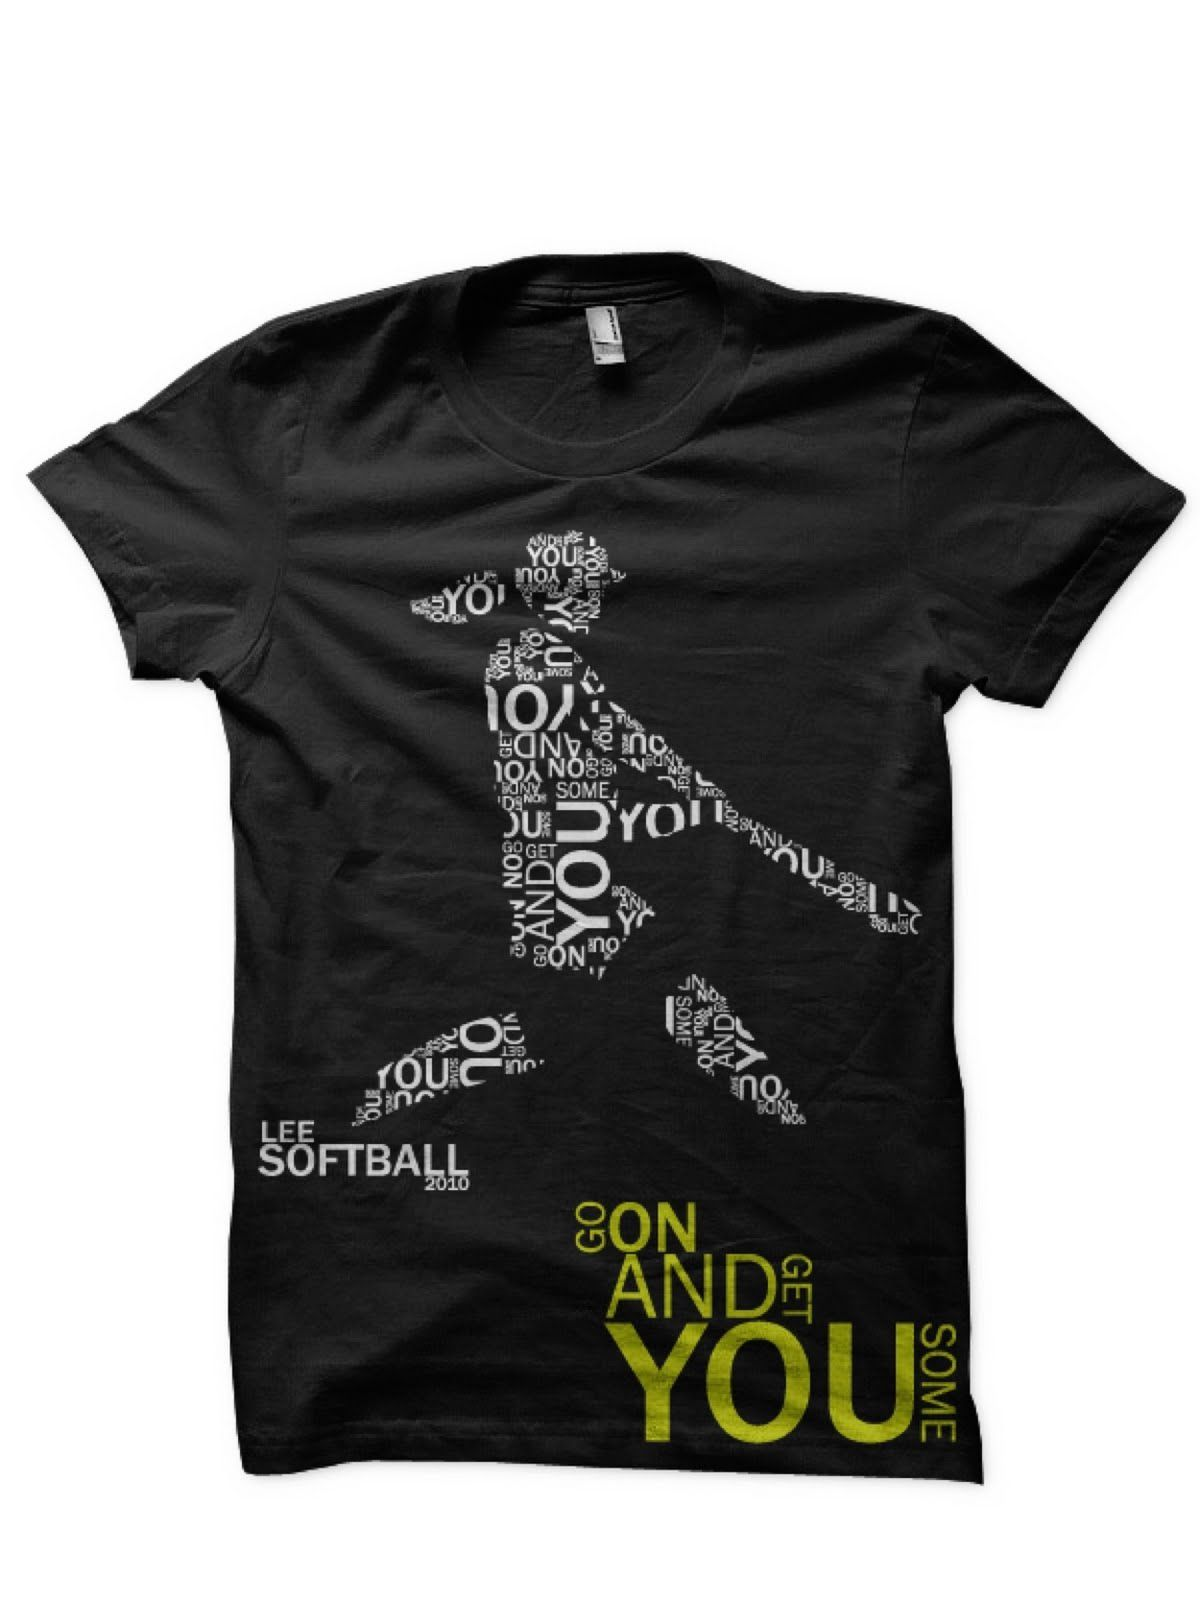 Softball Shirt Quotes Softball Shirt Softball Pinterest